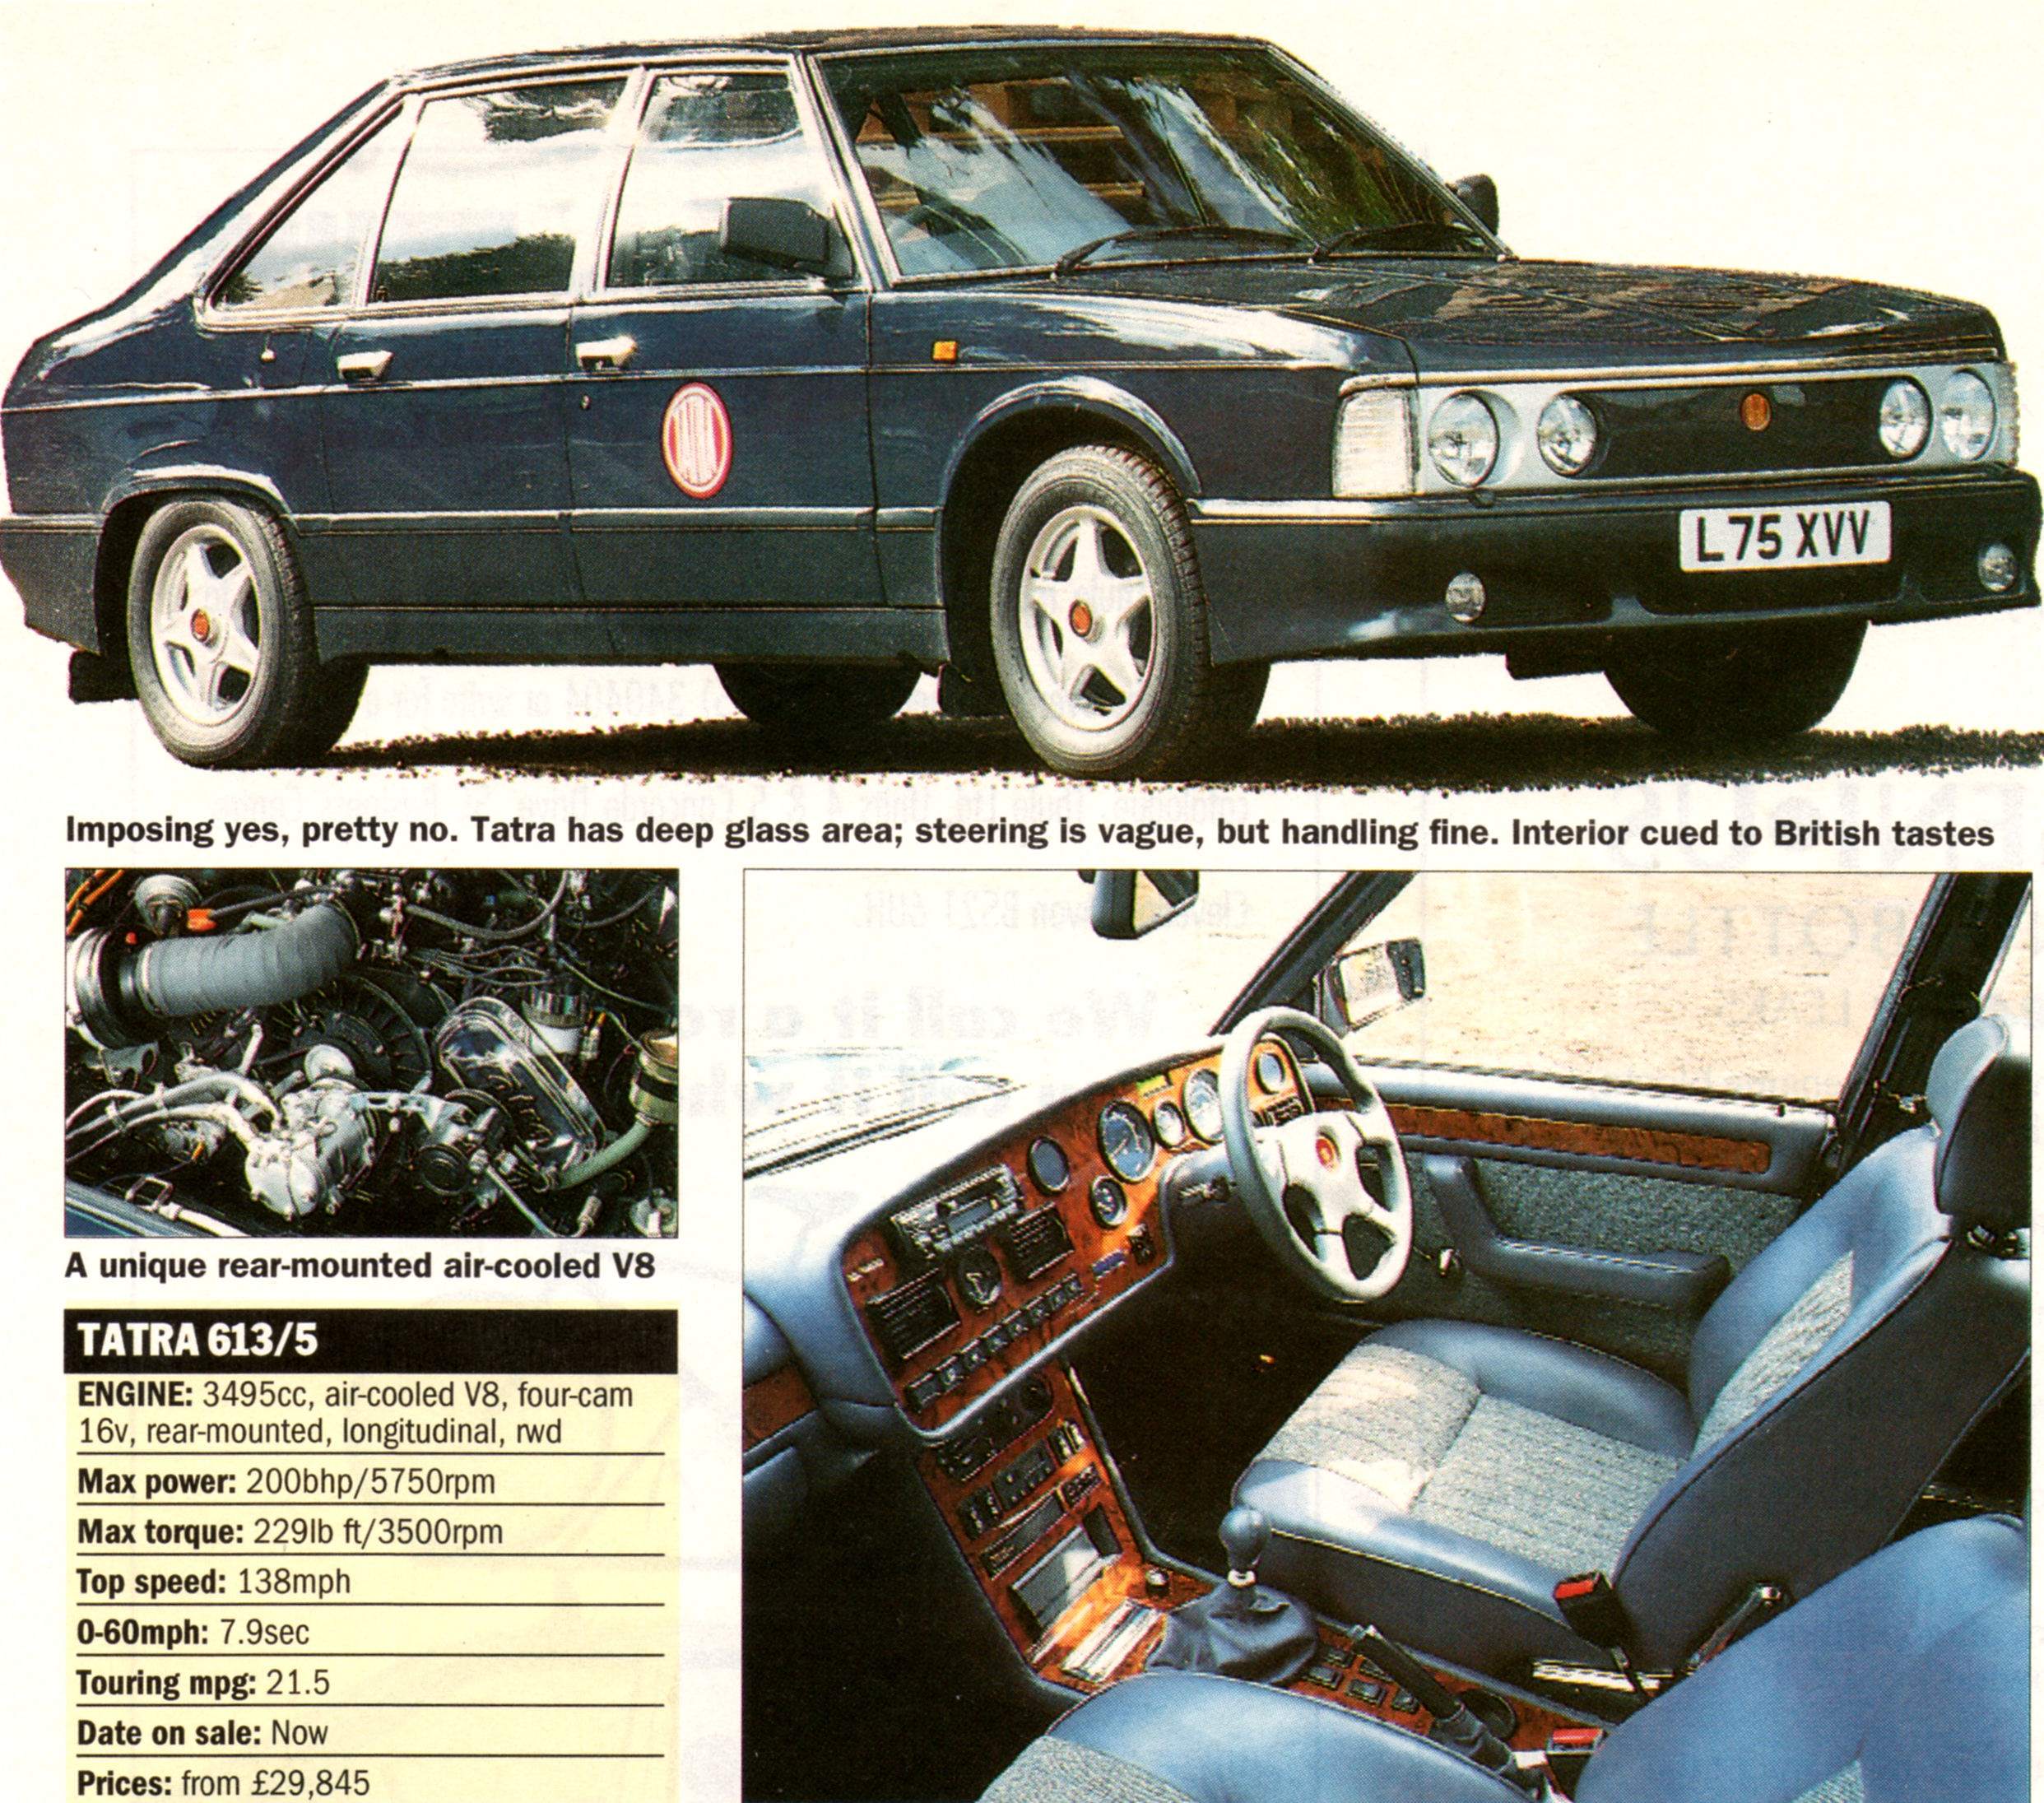 A review of the Tatra 613-5 back in the nineties has the temerity to suggest that the styling by Vignale was not pretty and that the steering was vague. If you click on the image you'll be able to read the specifications which are impressive, especially for a car twenty years ago.